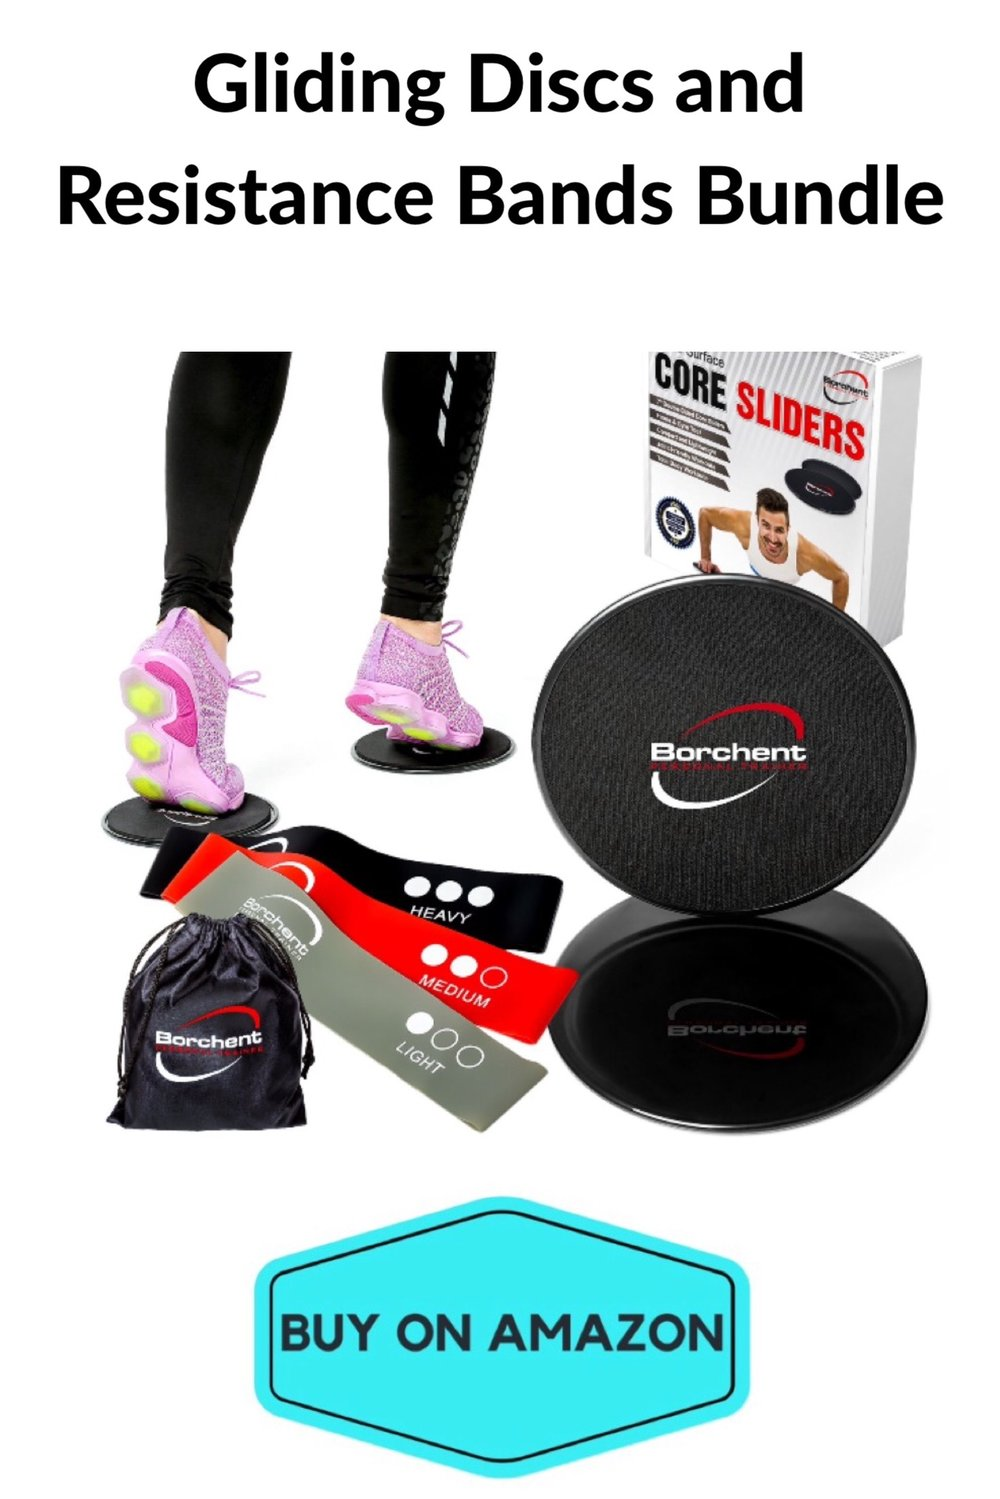 Gliding Discs and Resistance Bands Bundle